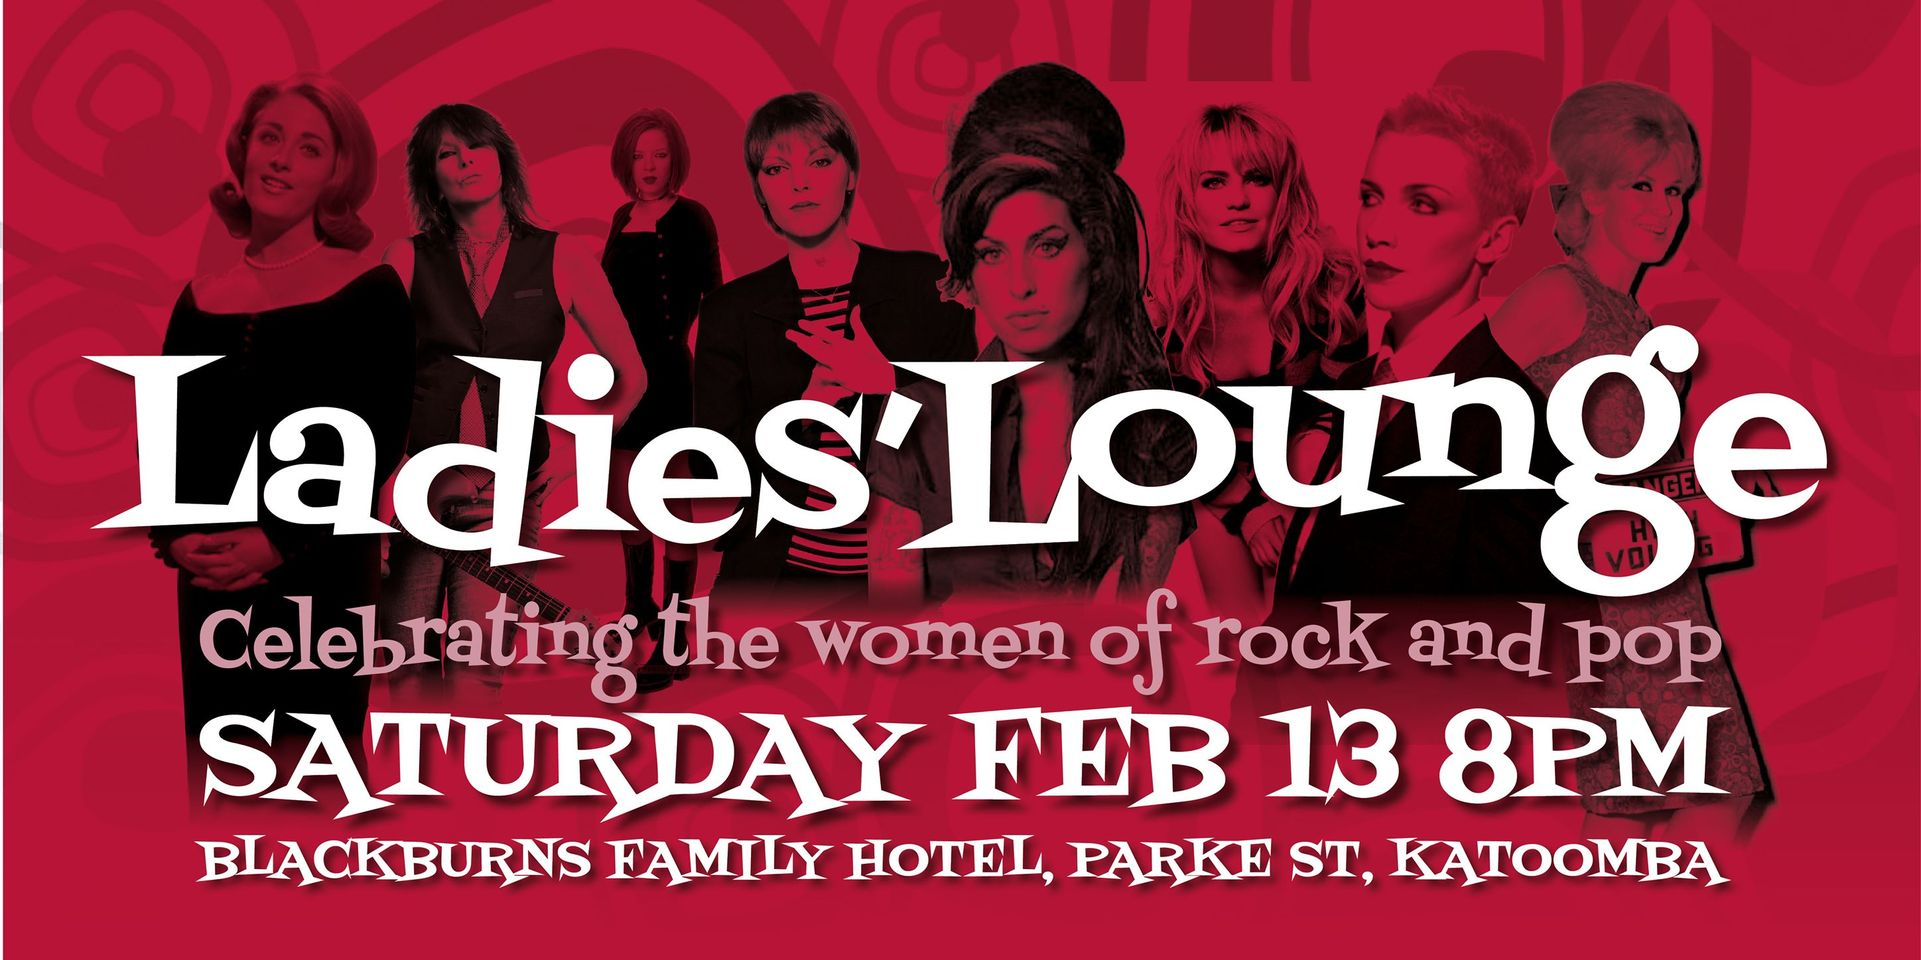 Ladies Lounge - Celebrating the Women of Rock & Pop | Katoomba Family Hotel